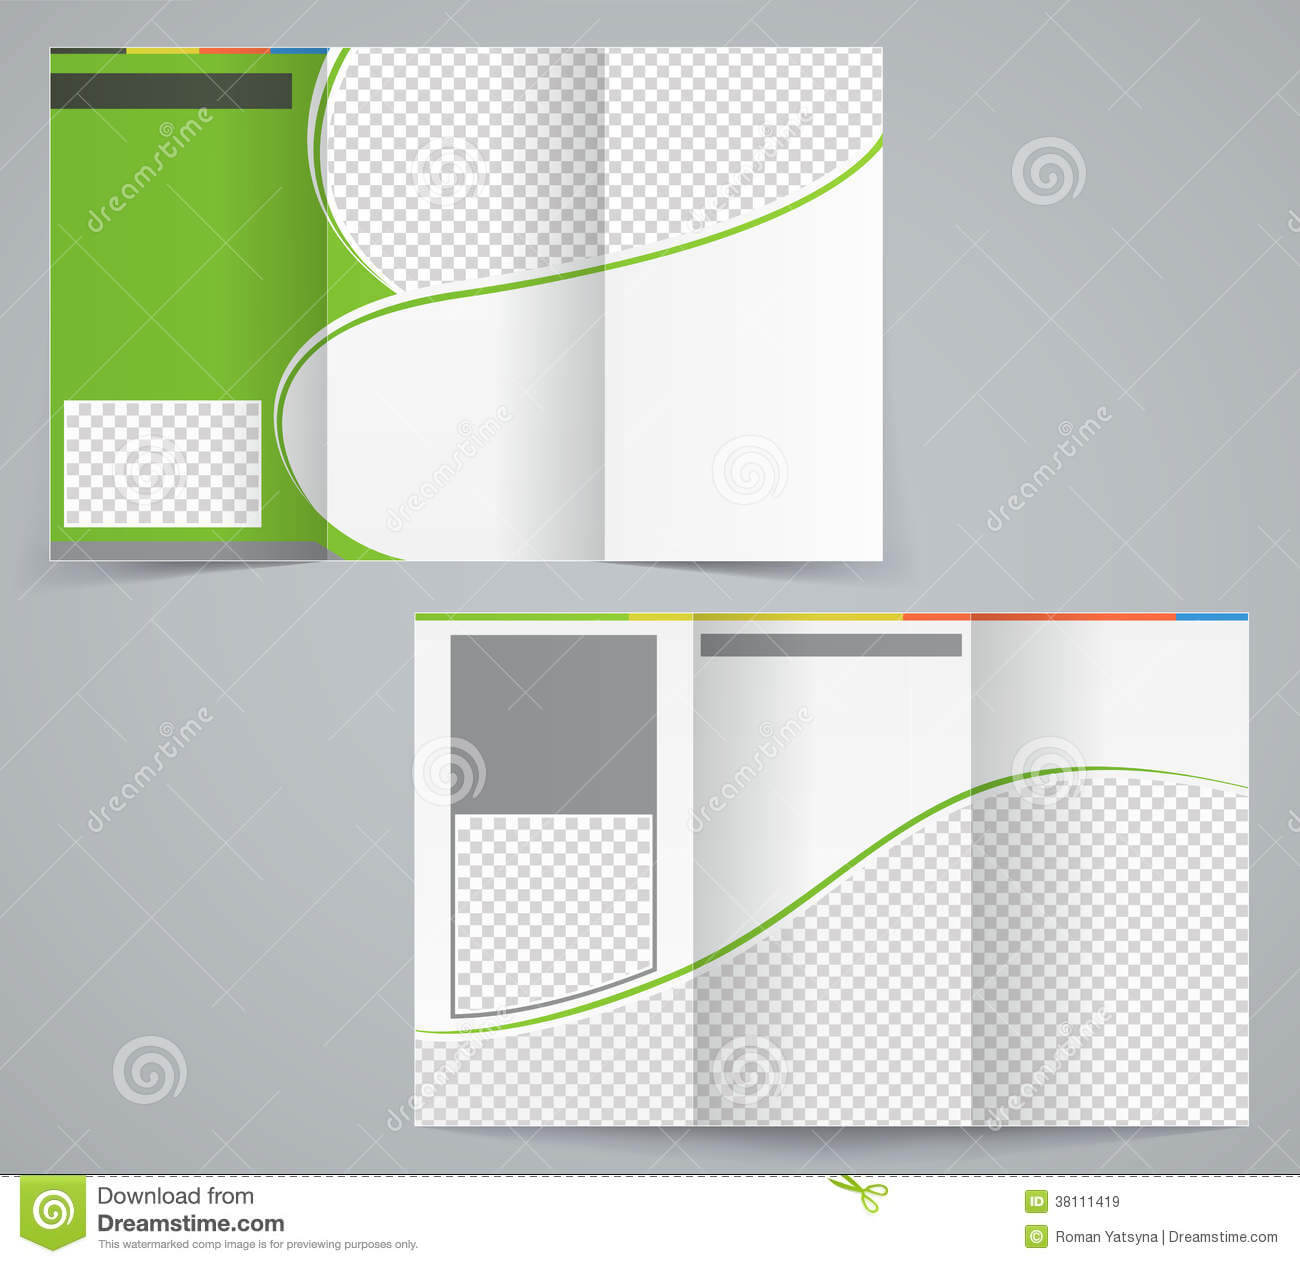 Tri-Fold Business Brochure Template, Vector Green Stock with regard to Free Illustrator Brochure Templates Download